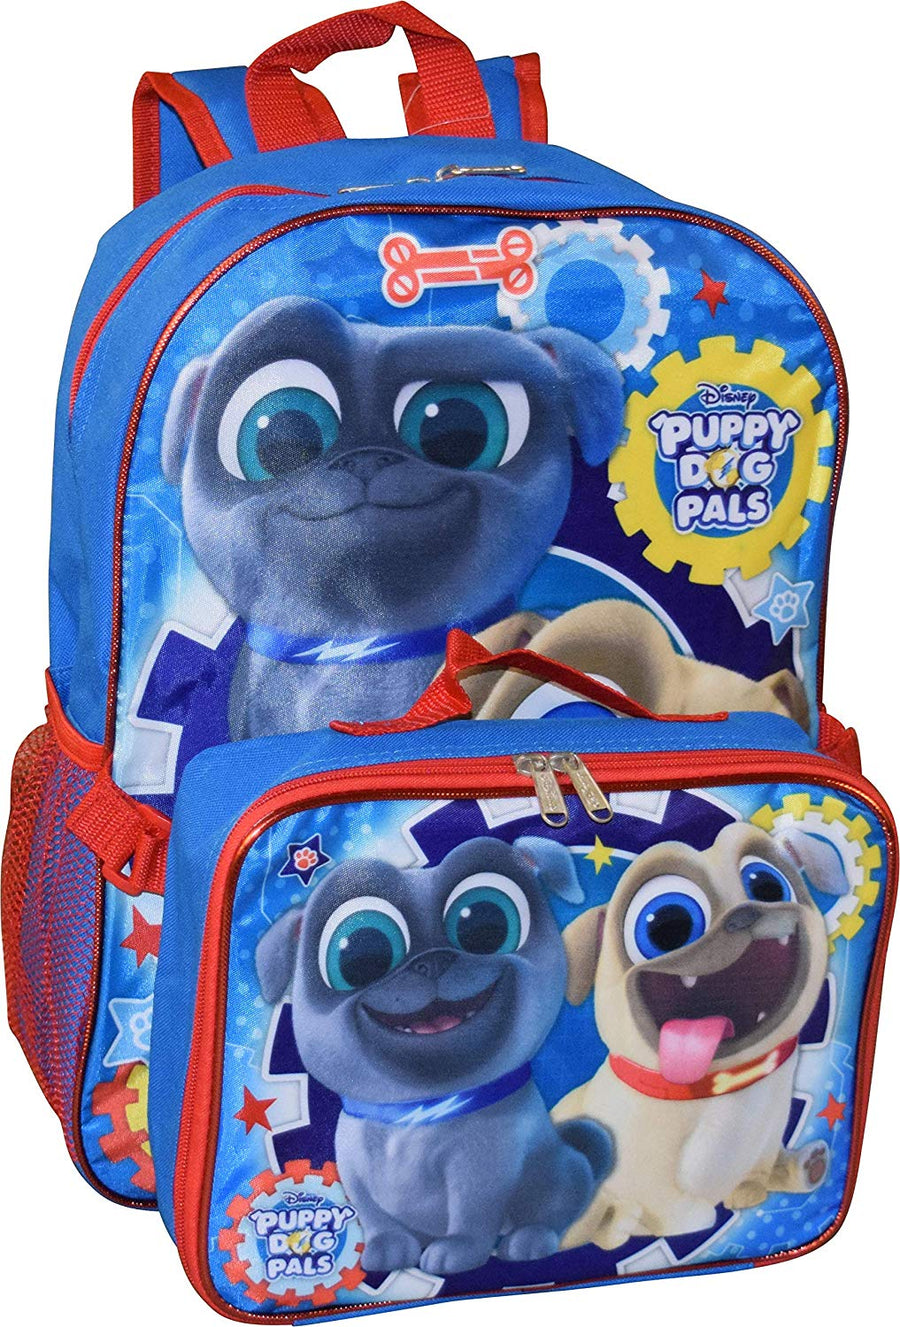 "Puppy Dog Pals 16"" School Bag Backpack-Detachable Lunch Bag-Grab & Go Play Pack Value Bundle Set"